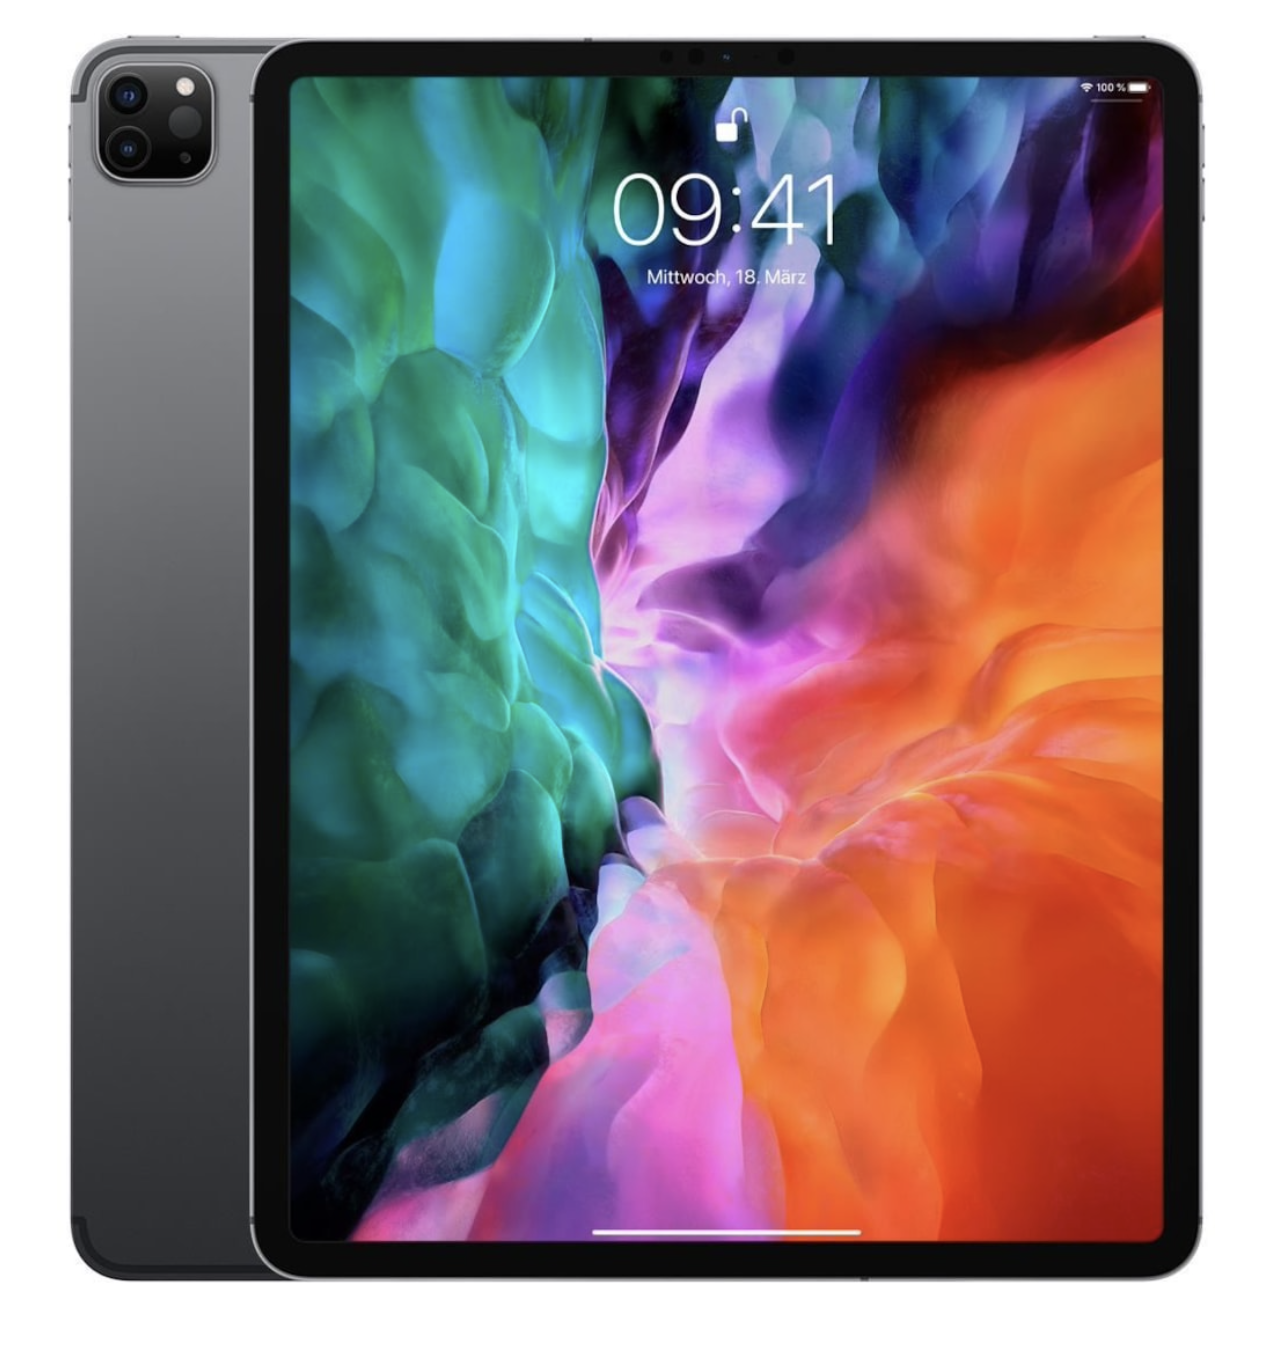 iPad Pro 12.9-inch 128GB WiFi - Space Gray (March-2020) - Discontinued April 2021 at Small Dog Electronics